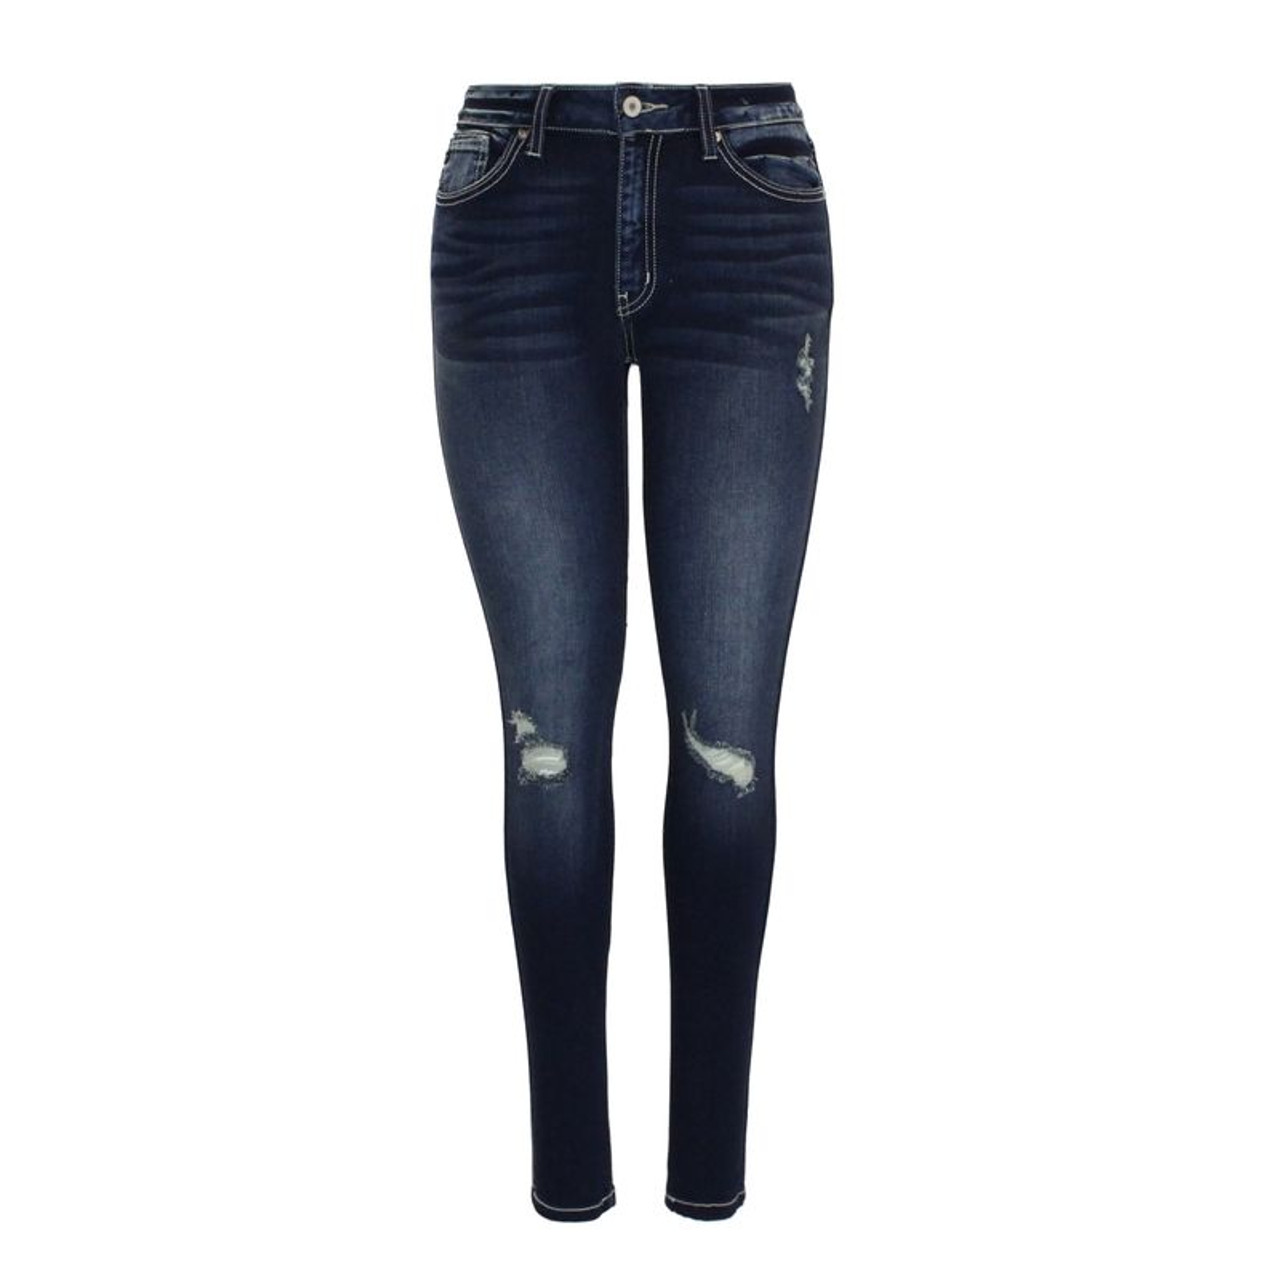 a69e53377ca118 Lacey Mid Rise Skinny Jeans (KanCan) - Trendy Threads Inc